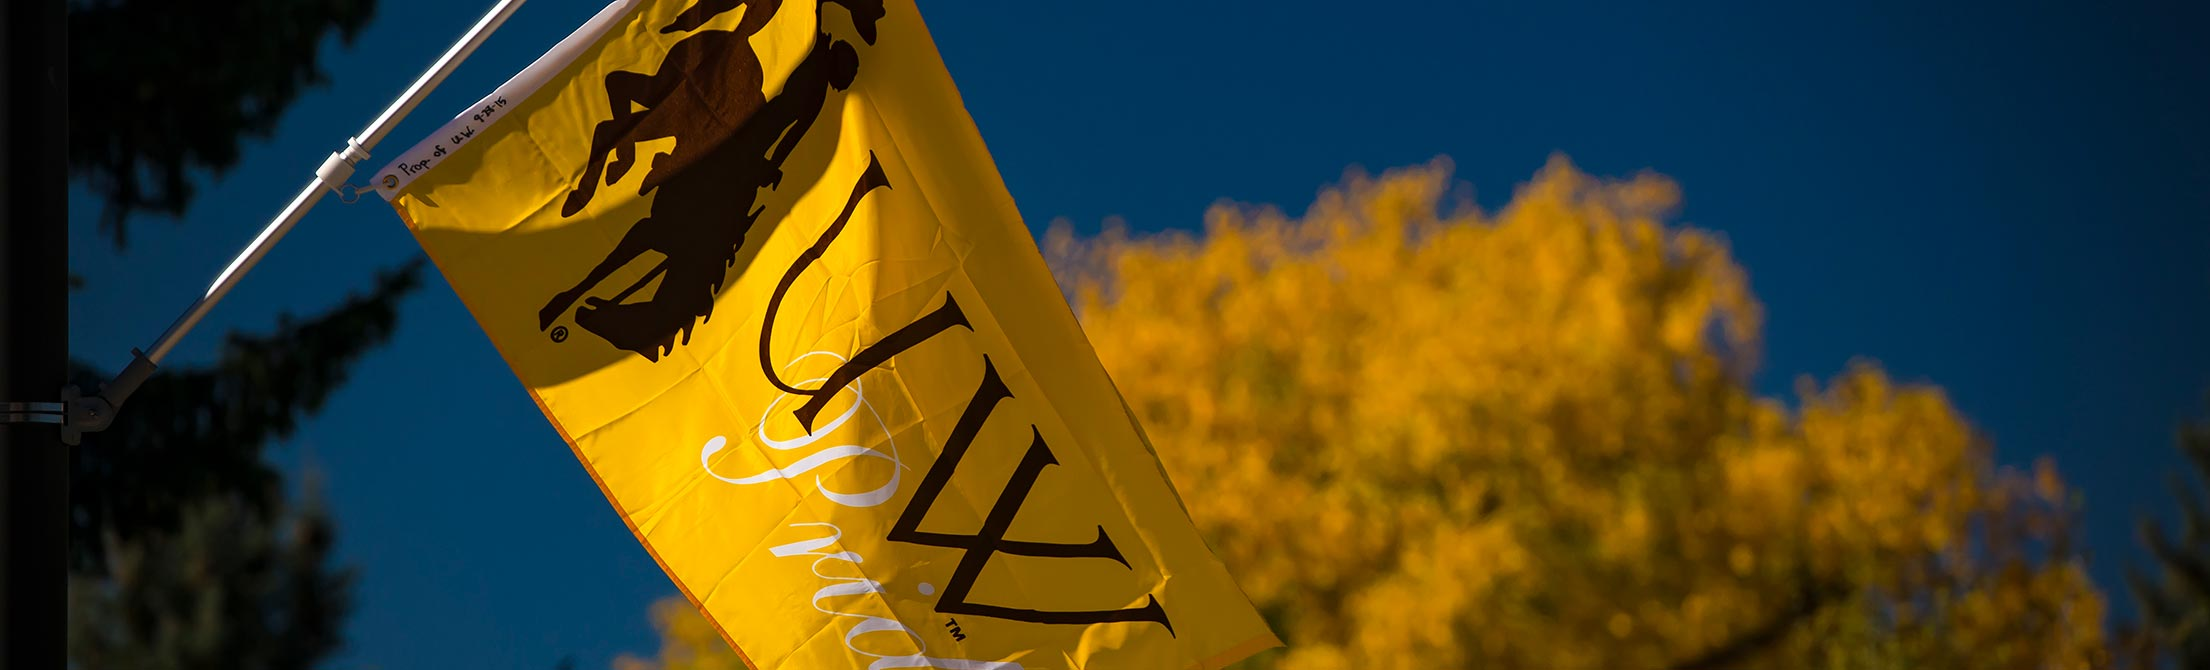 University of Wyoming Spirit Flag